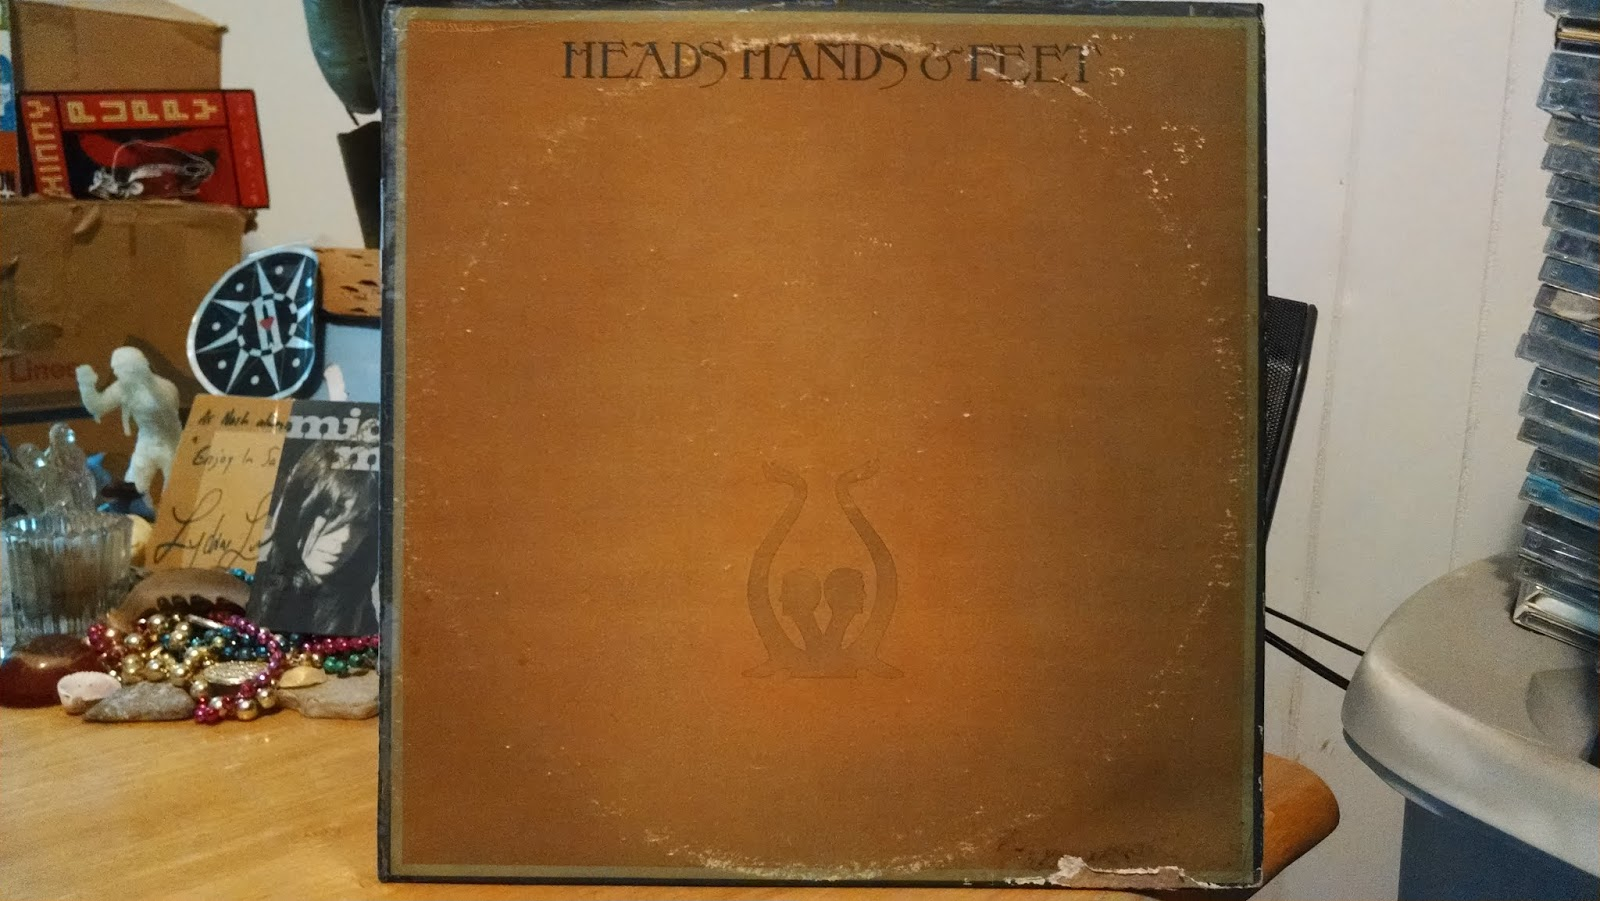 Heads hands and feet download